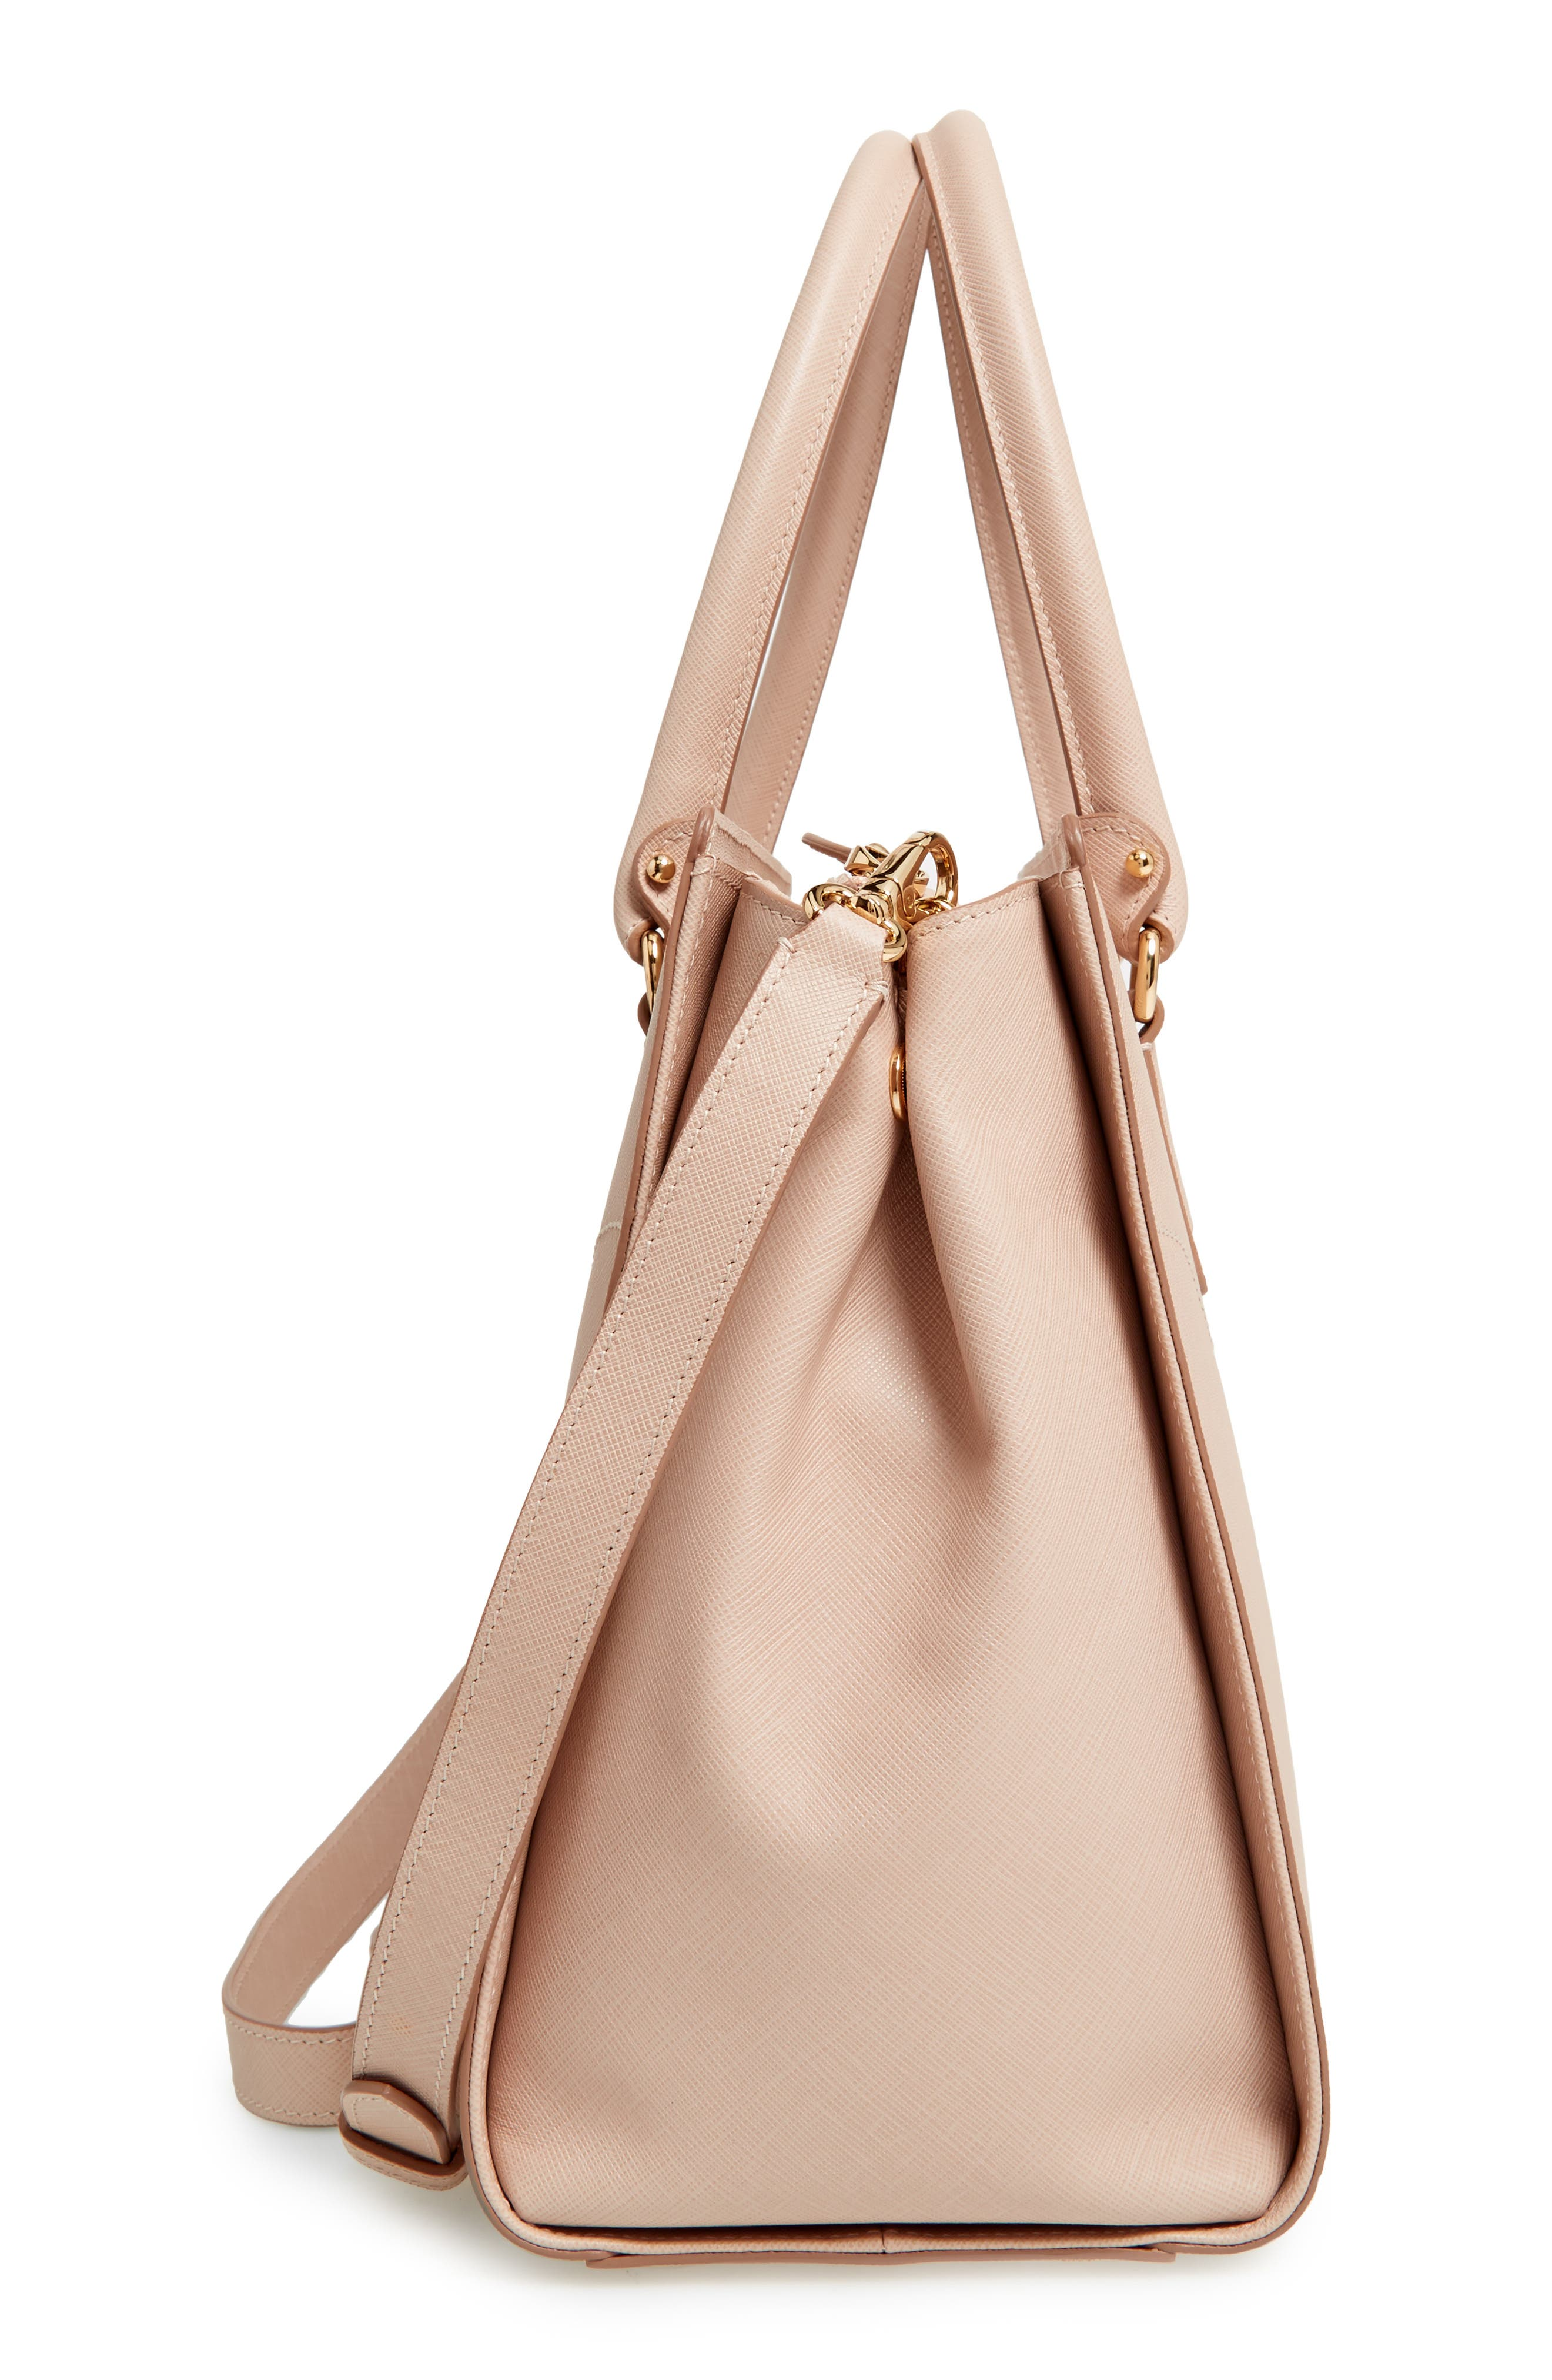 Saffiano Leather Tote,                             Alternate thumbnail 5, color,                             New Bisque Macaron